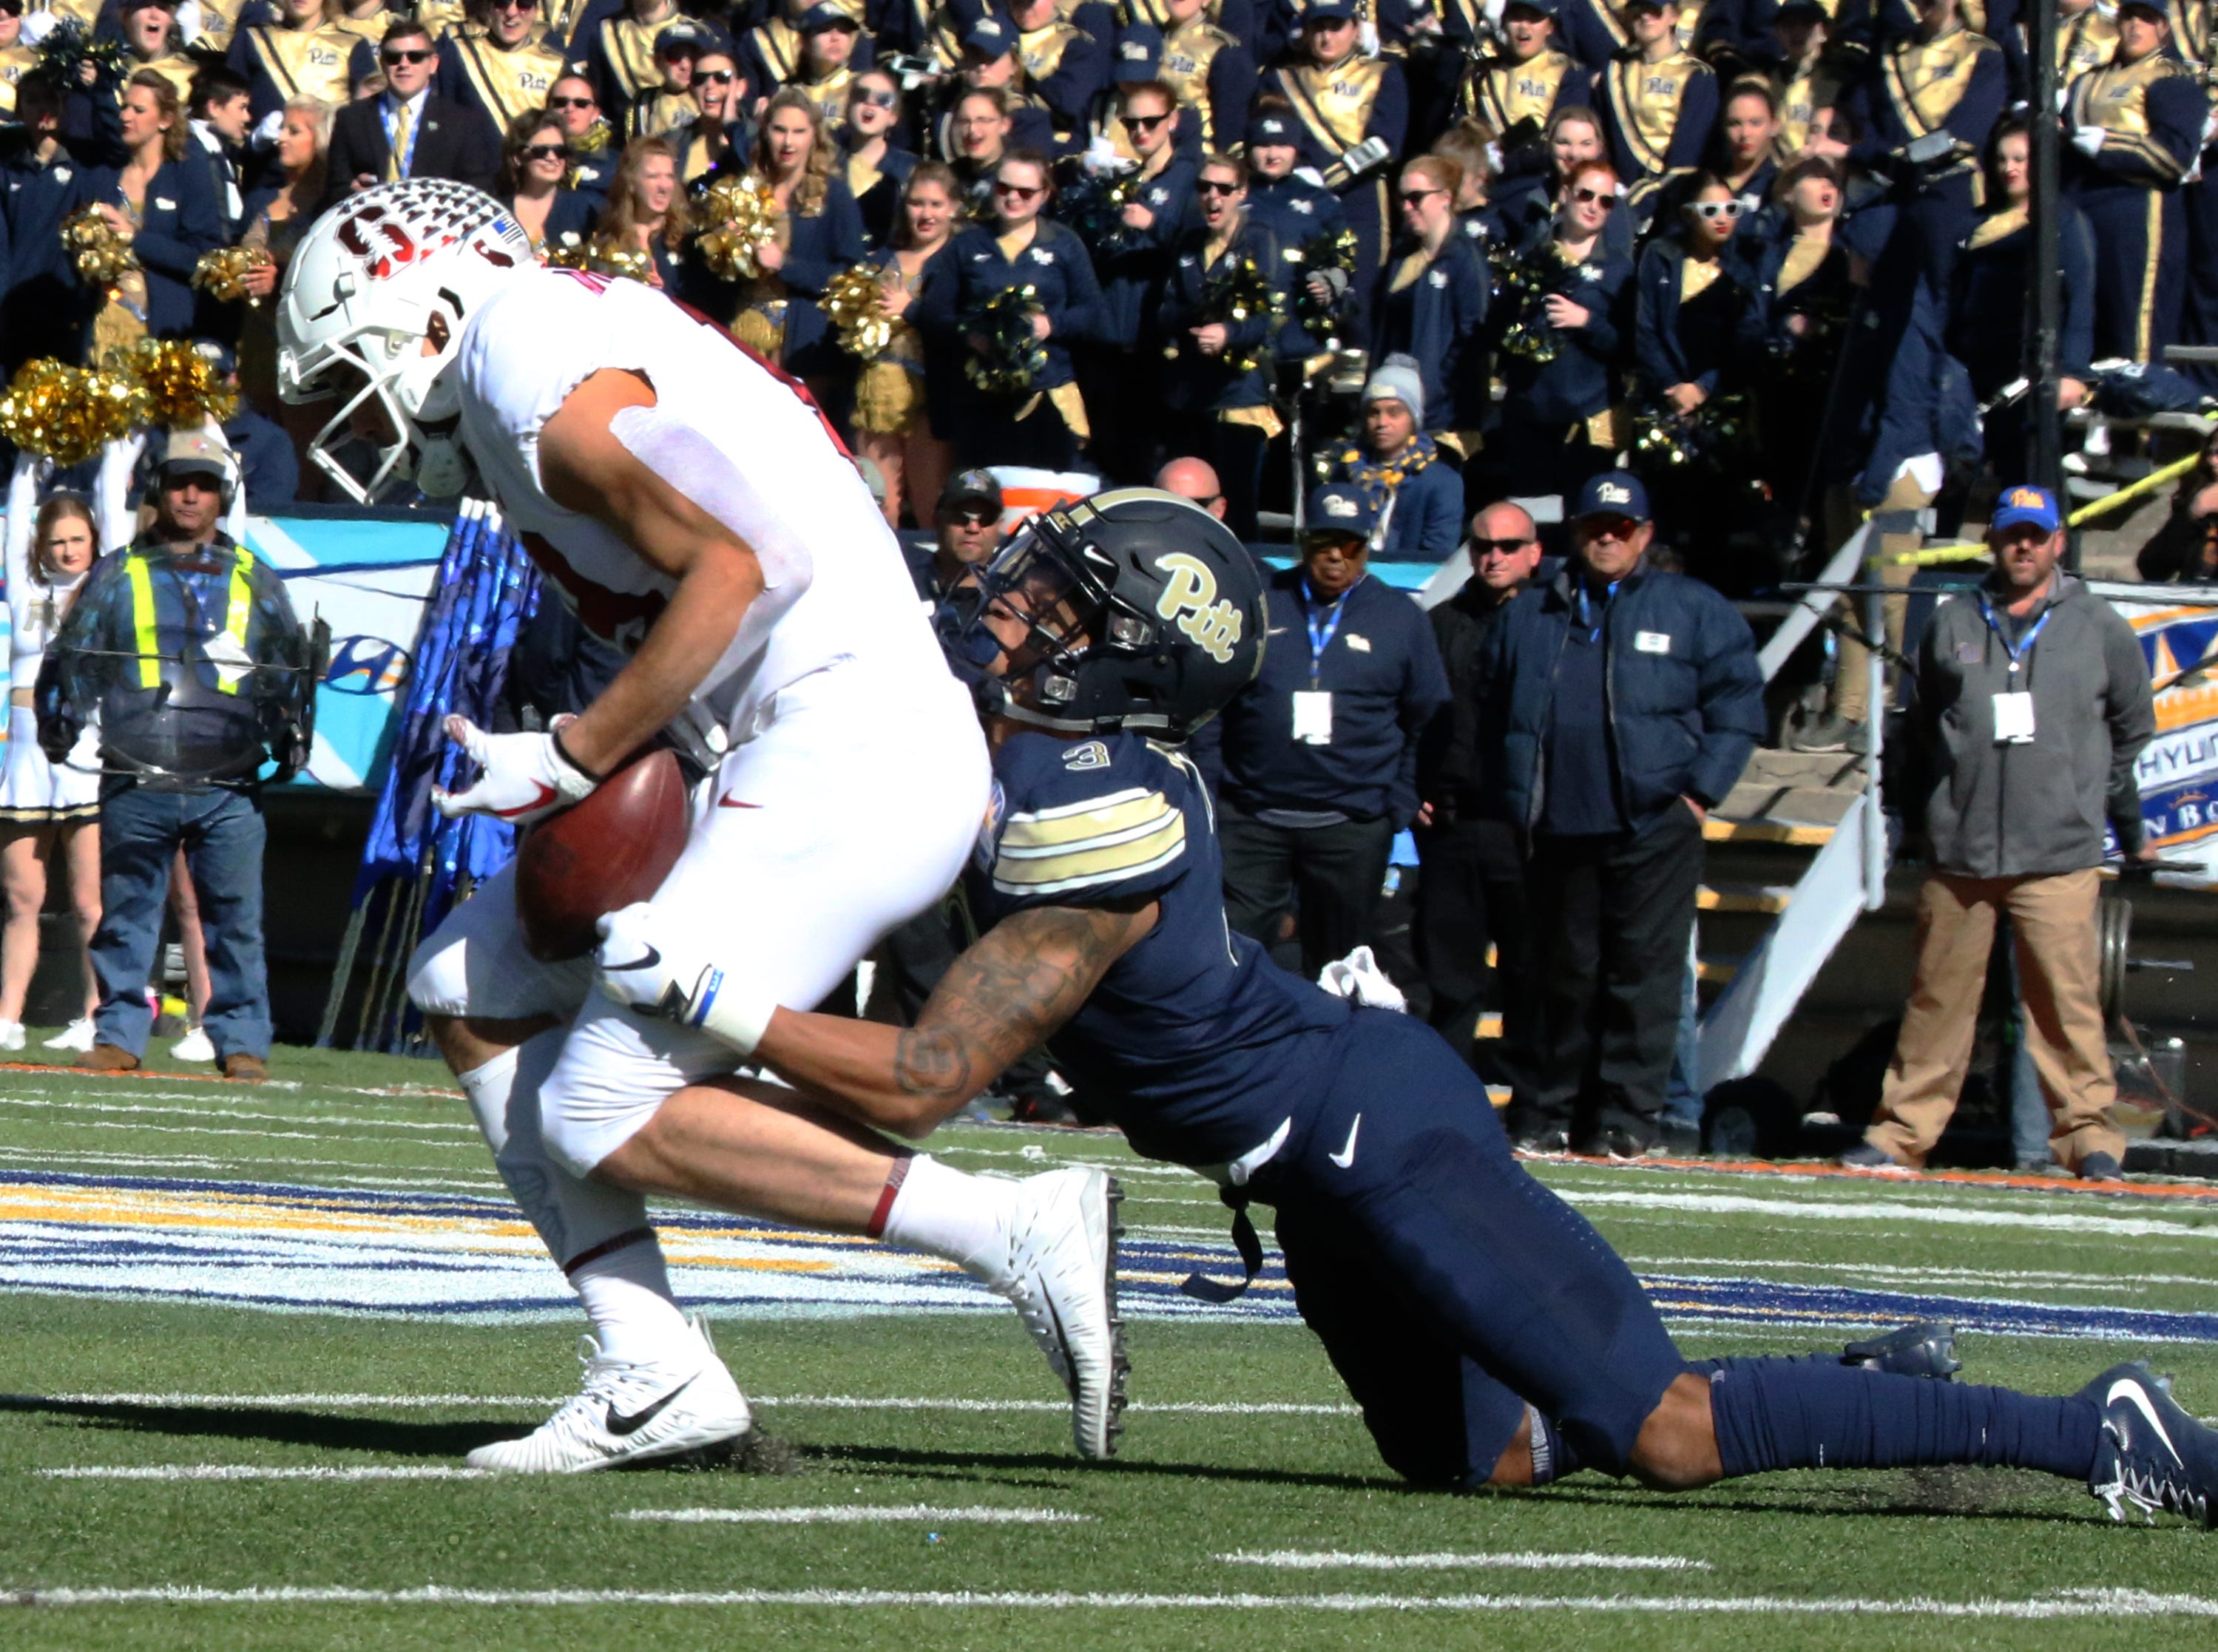 Stanford wide receiver JJ Arceaga-Whiteside, 19, loses the football after a shot pass reception attempt against Pitt Monday.